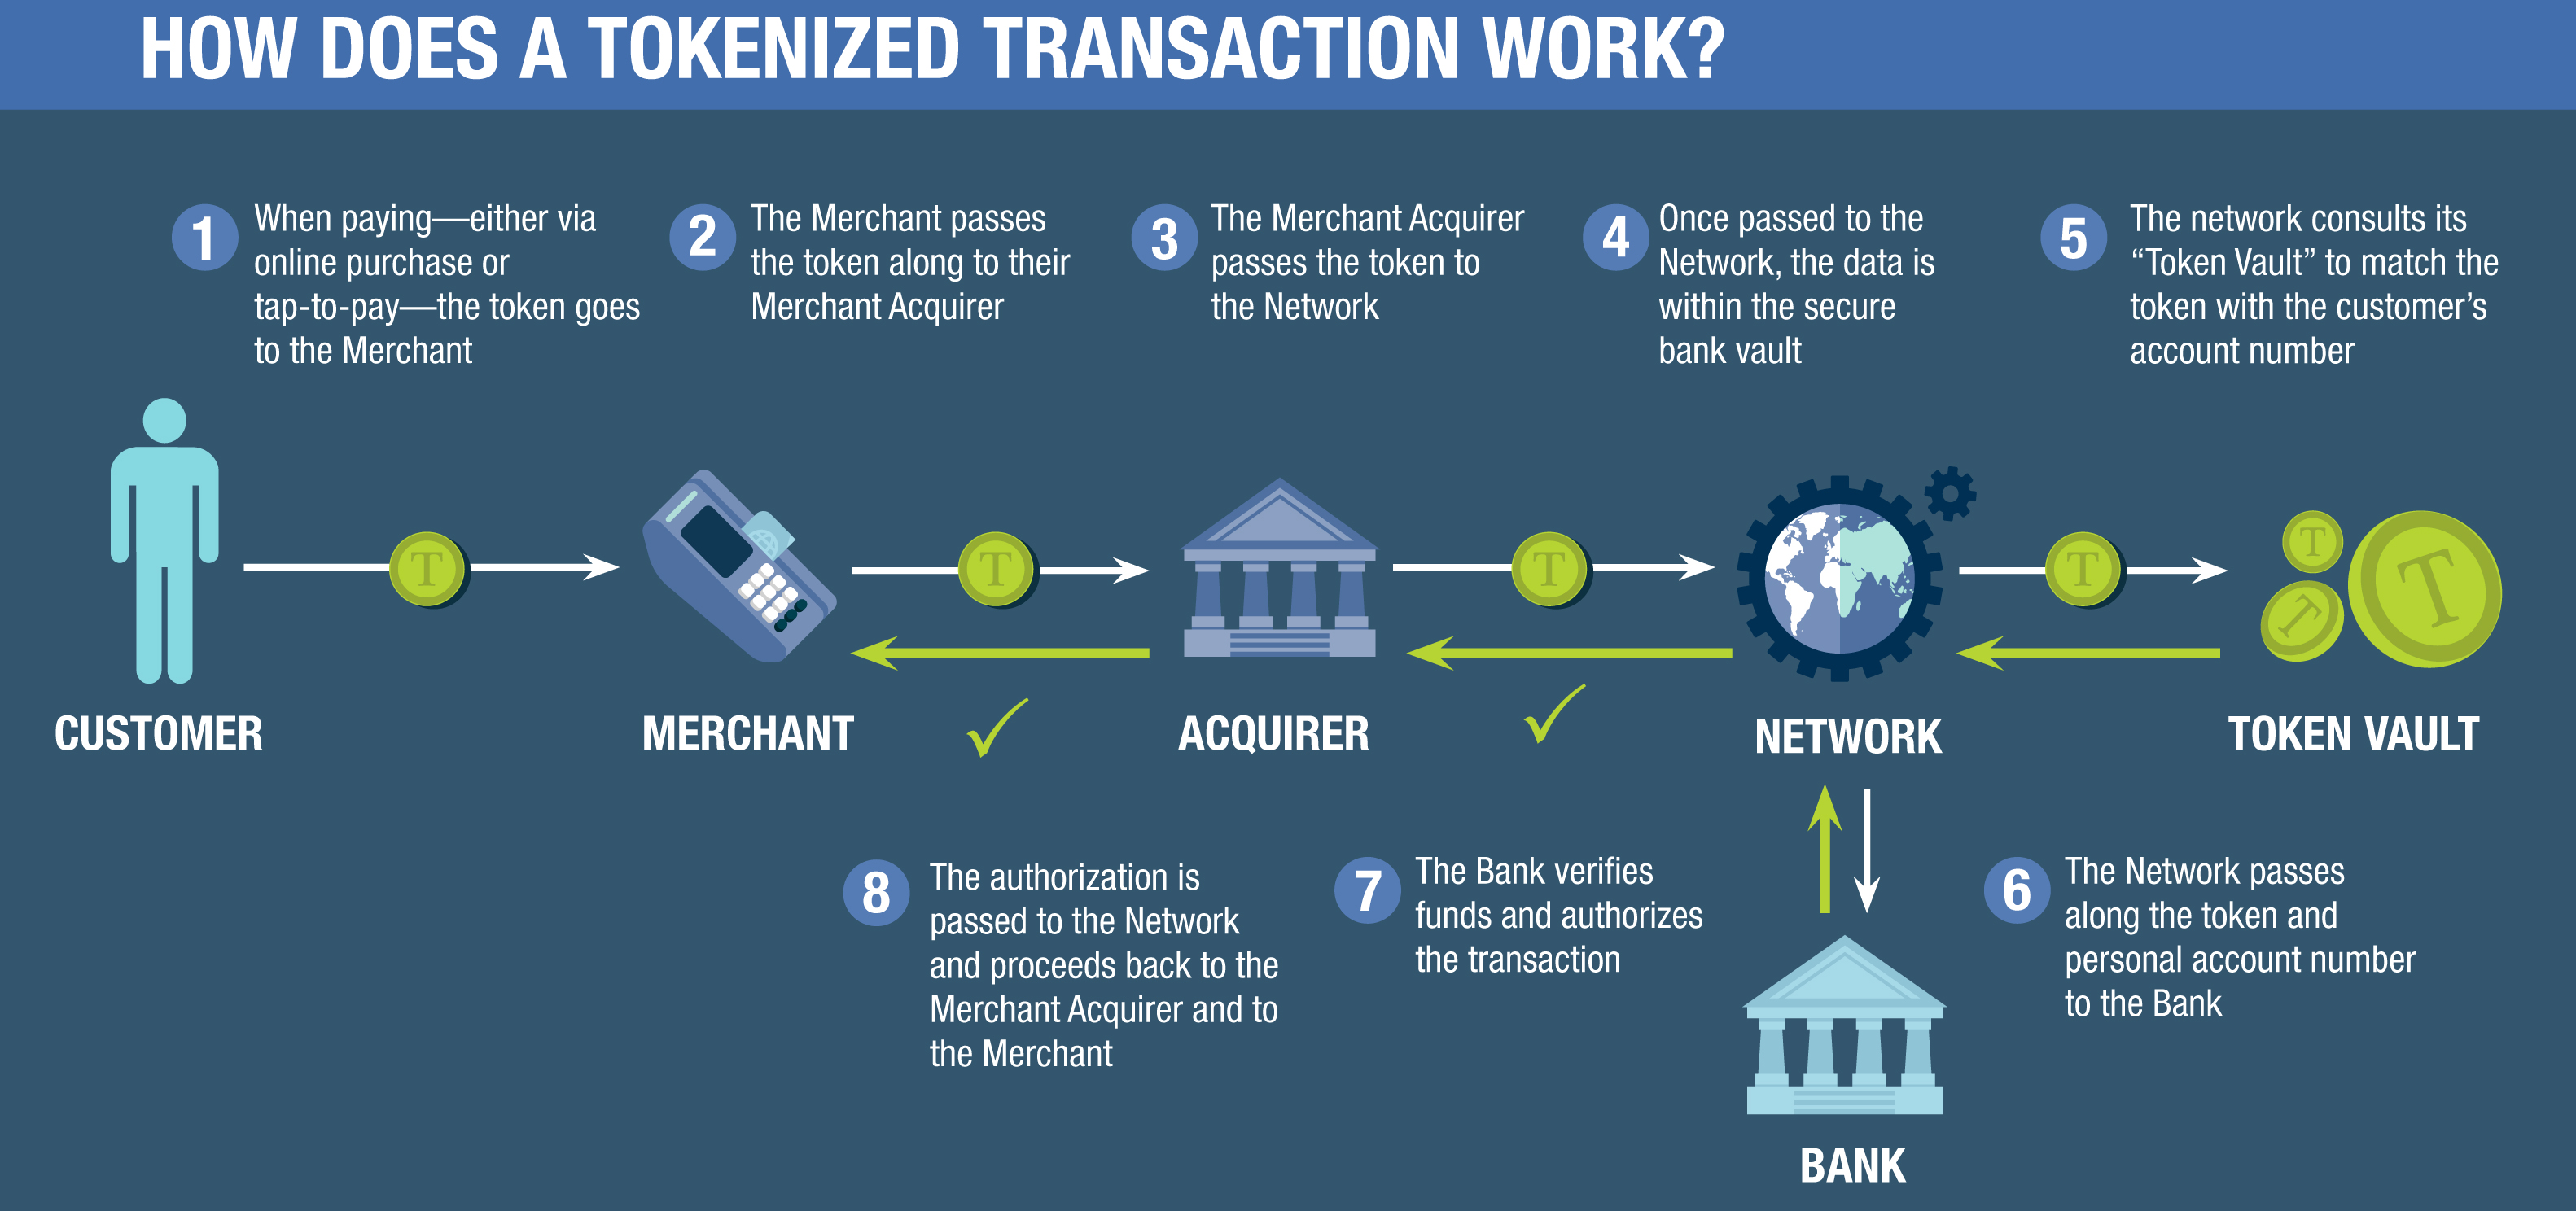 How does a tokenized transaction work